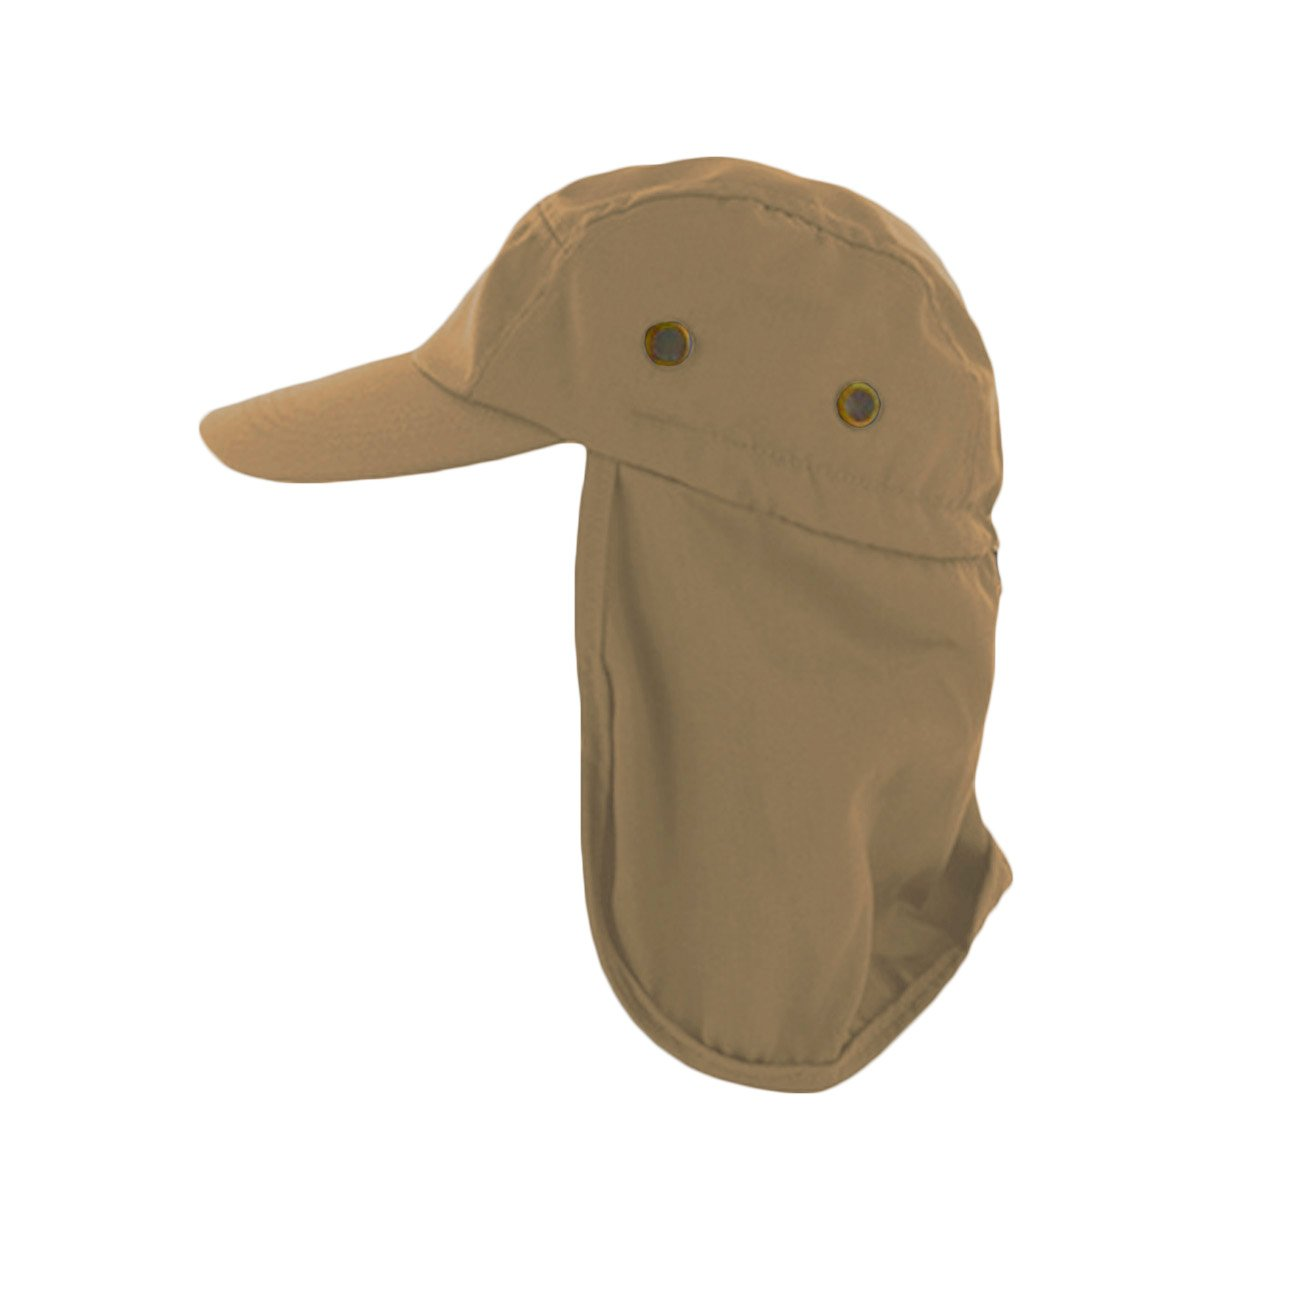 dfe96a8b2a174 Amazon.com   Magg Mens Fishing Boating Hiking Army Military Snap Brim Ear  Neck Cover Sun Flap Cap (Black)   Sports   Outdoors